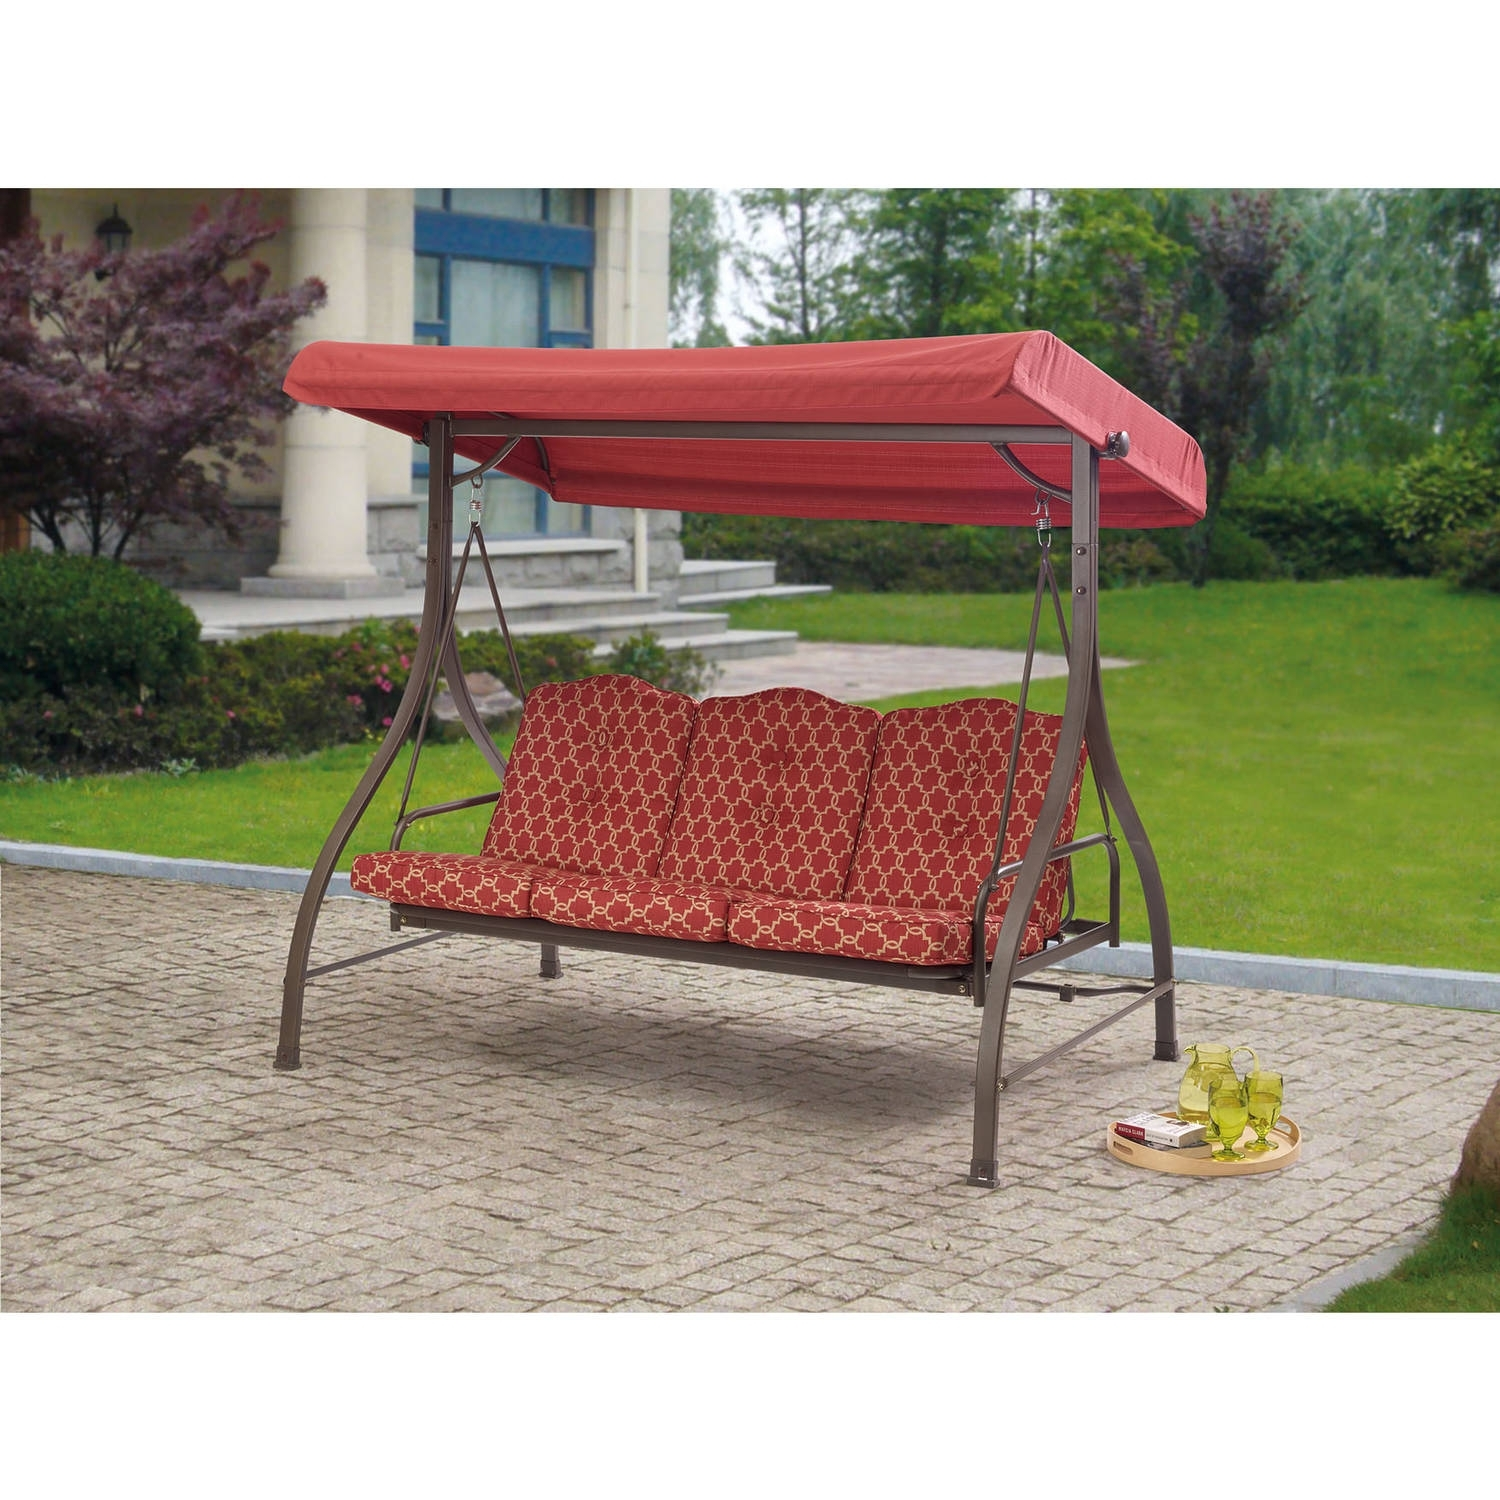 Image of: Mainstays Ashwood Heights 3 Seat Cushion Swing Walmart With Regard To Red Outdoor Seat Cushions Red Outdoor Seat Cushions Set For Patio